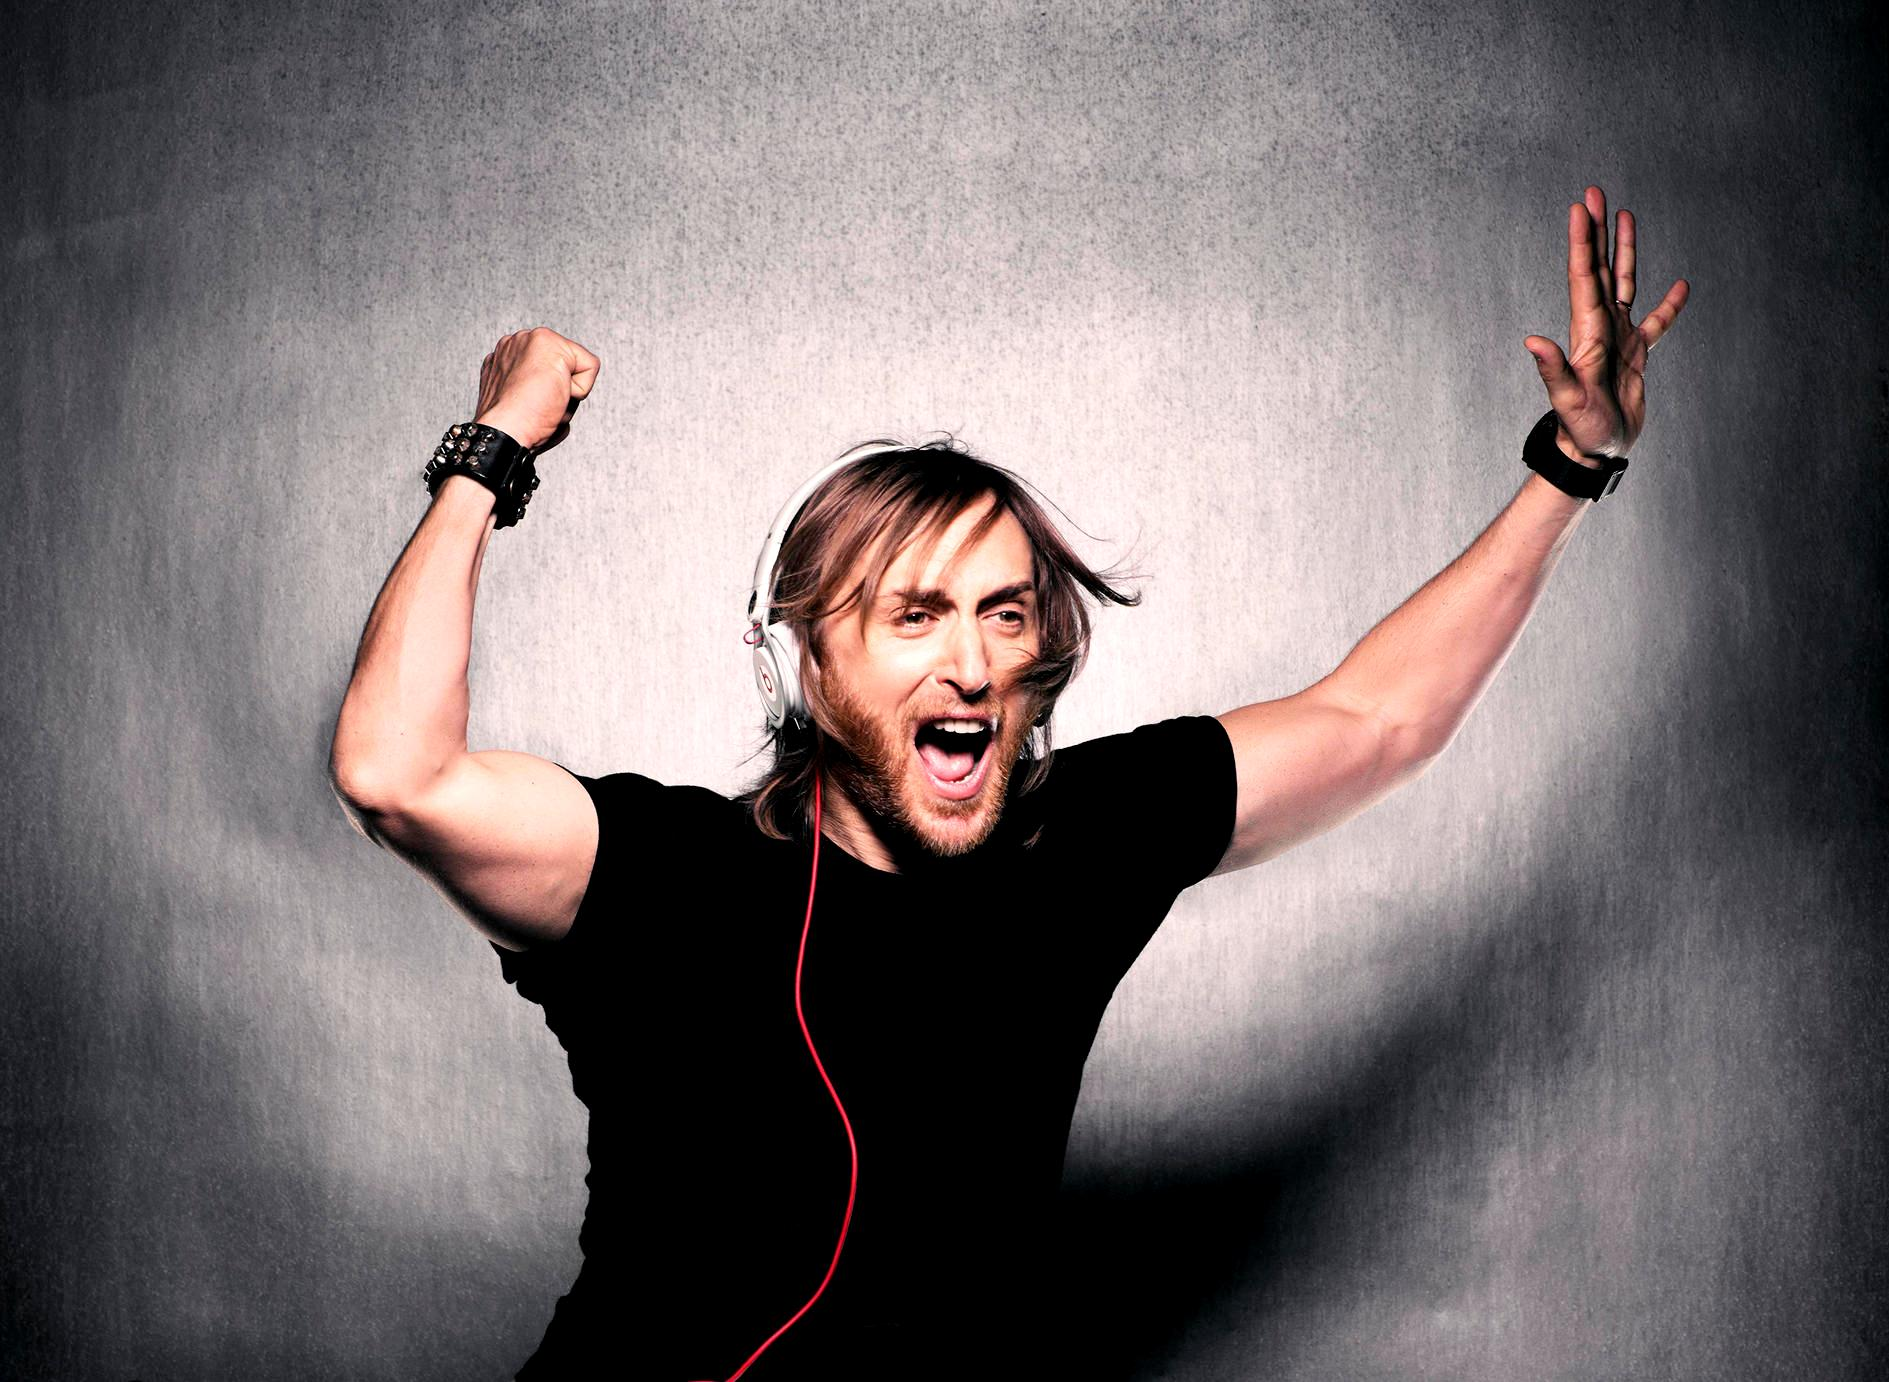 david-guetta-sues-over-parody-youredm